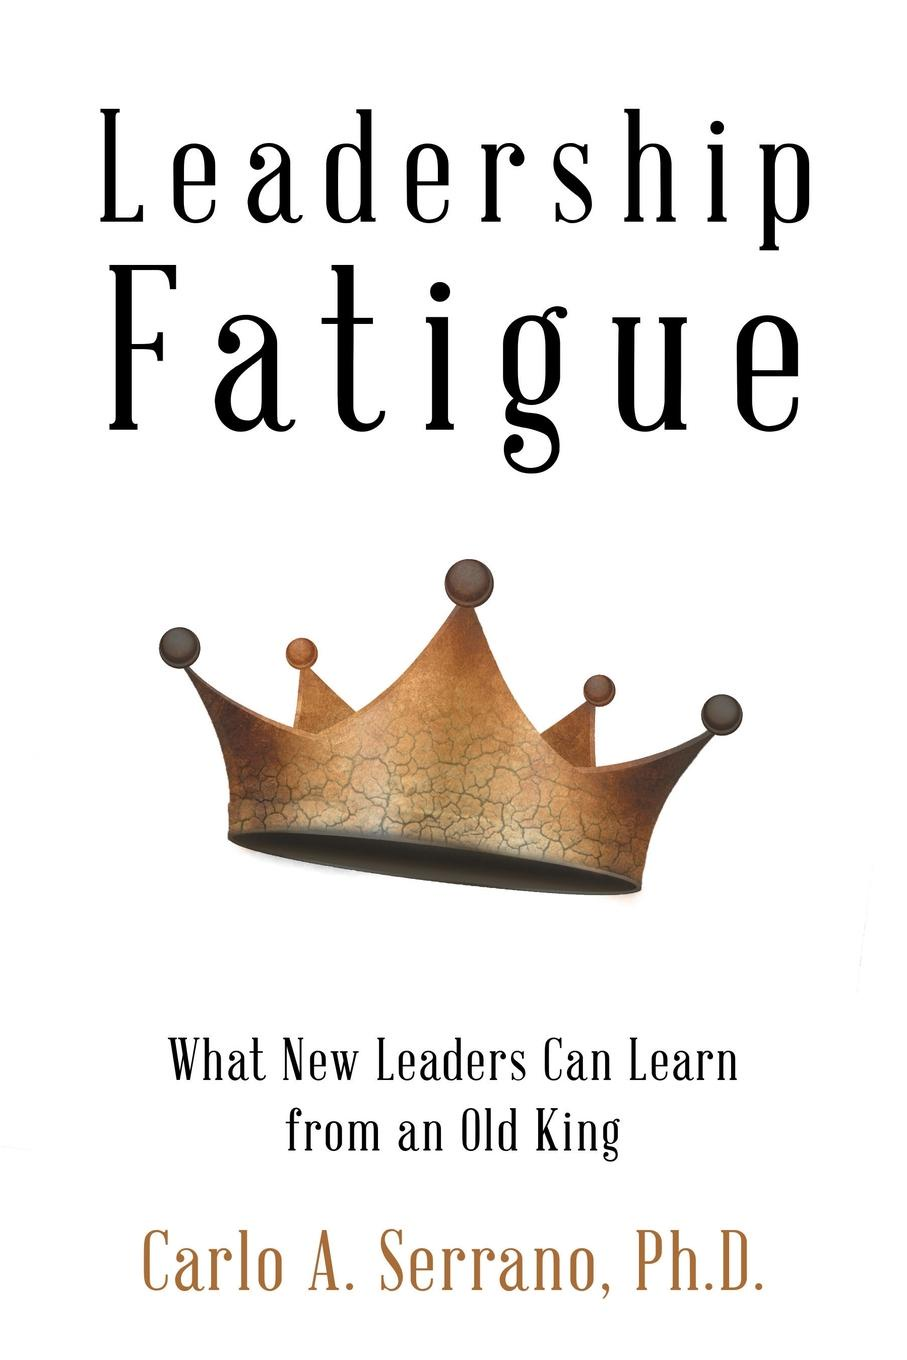 Ph.D. Carlo A. Serrano Leadership Fatigue. What New Leaders Can Learn from an Old King leaders